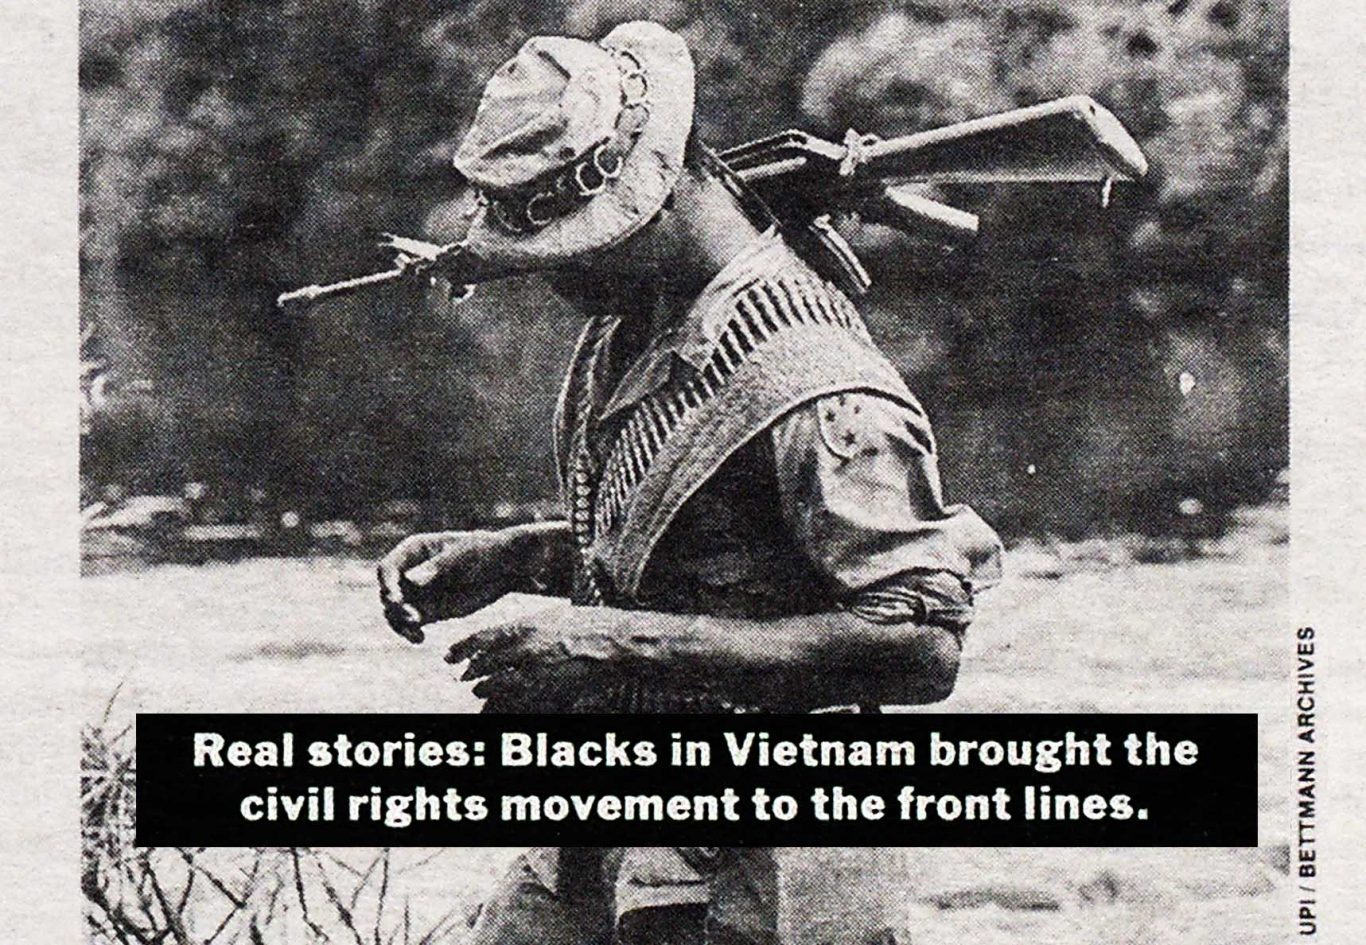 1988 Village Voice article by Dalton Narine about Black soldiers in Vietnam